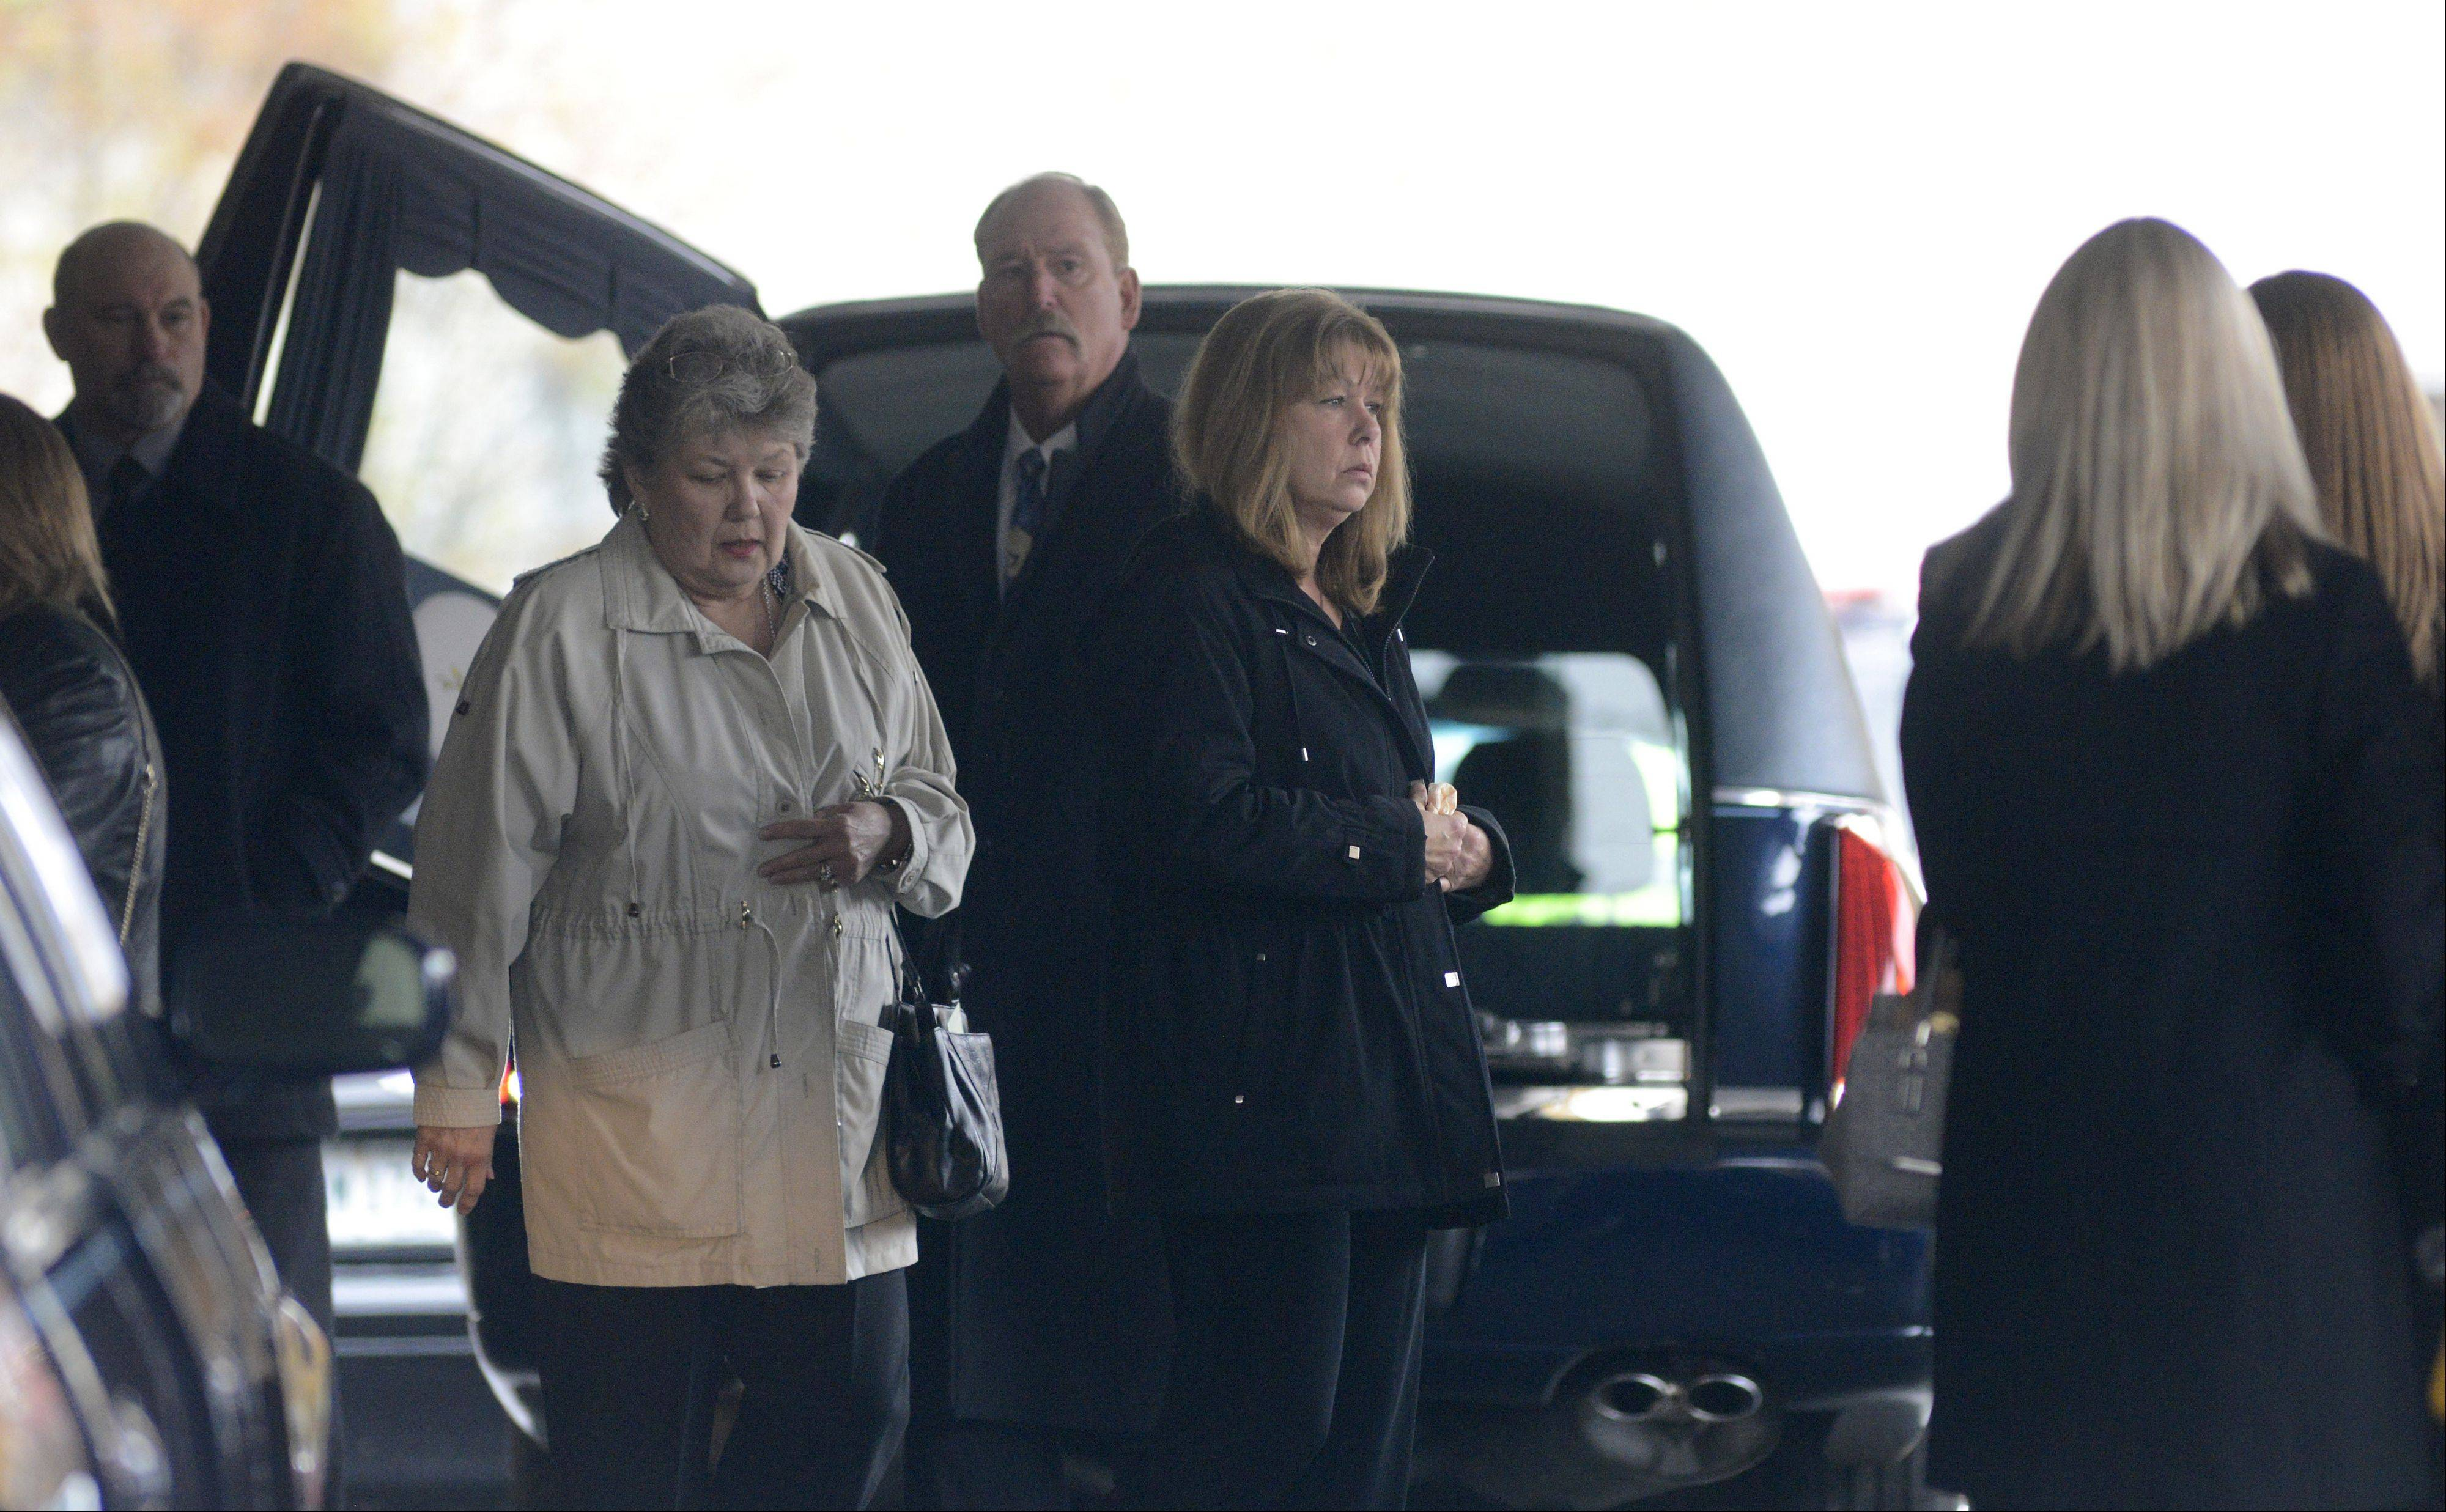 Teri Hansen (center, black jacket), widow of South Elgin Village President Jim Hansen, exits the Laird Funeral Home in Elgin Thursday with her mother, Bonnie Spencer.